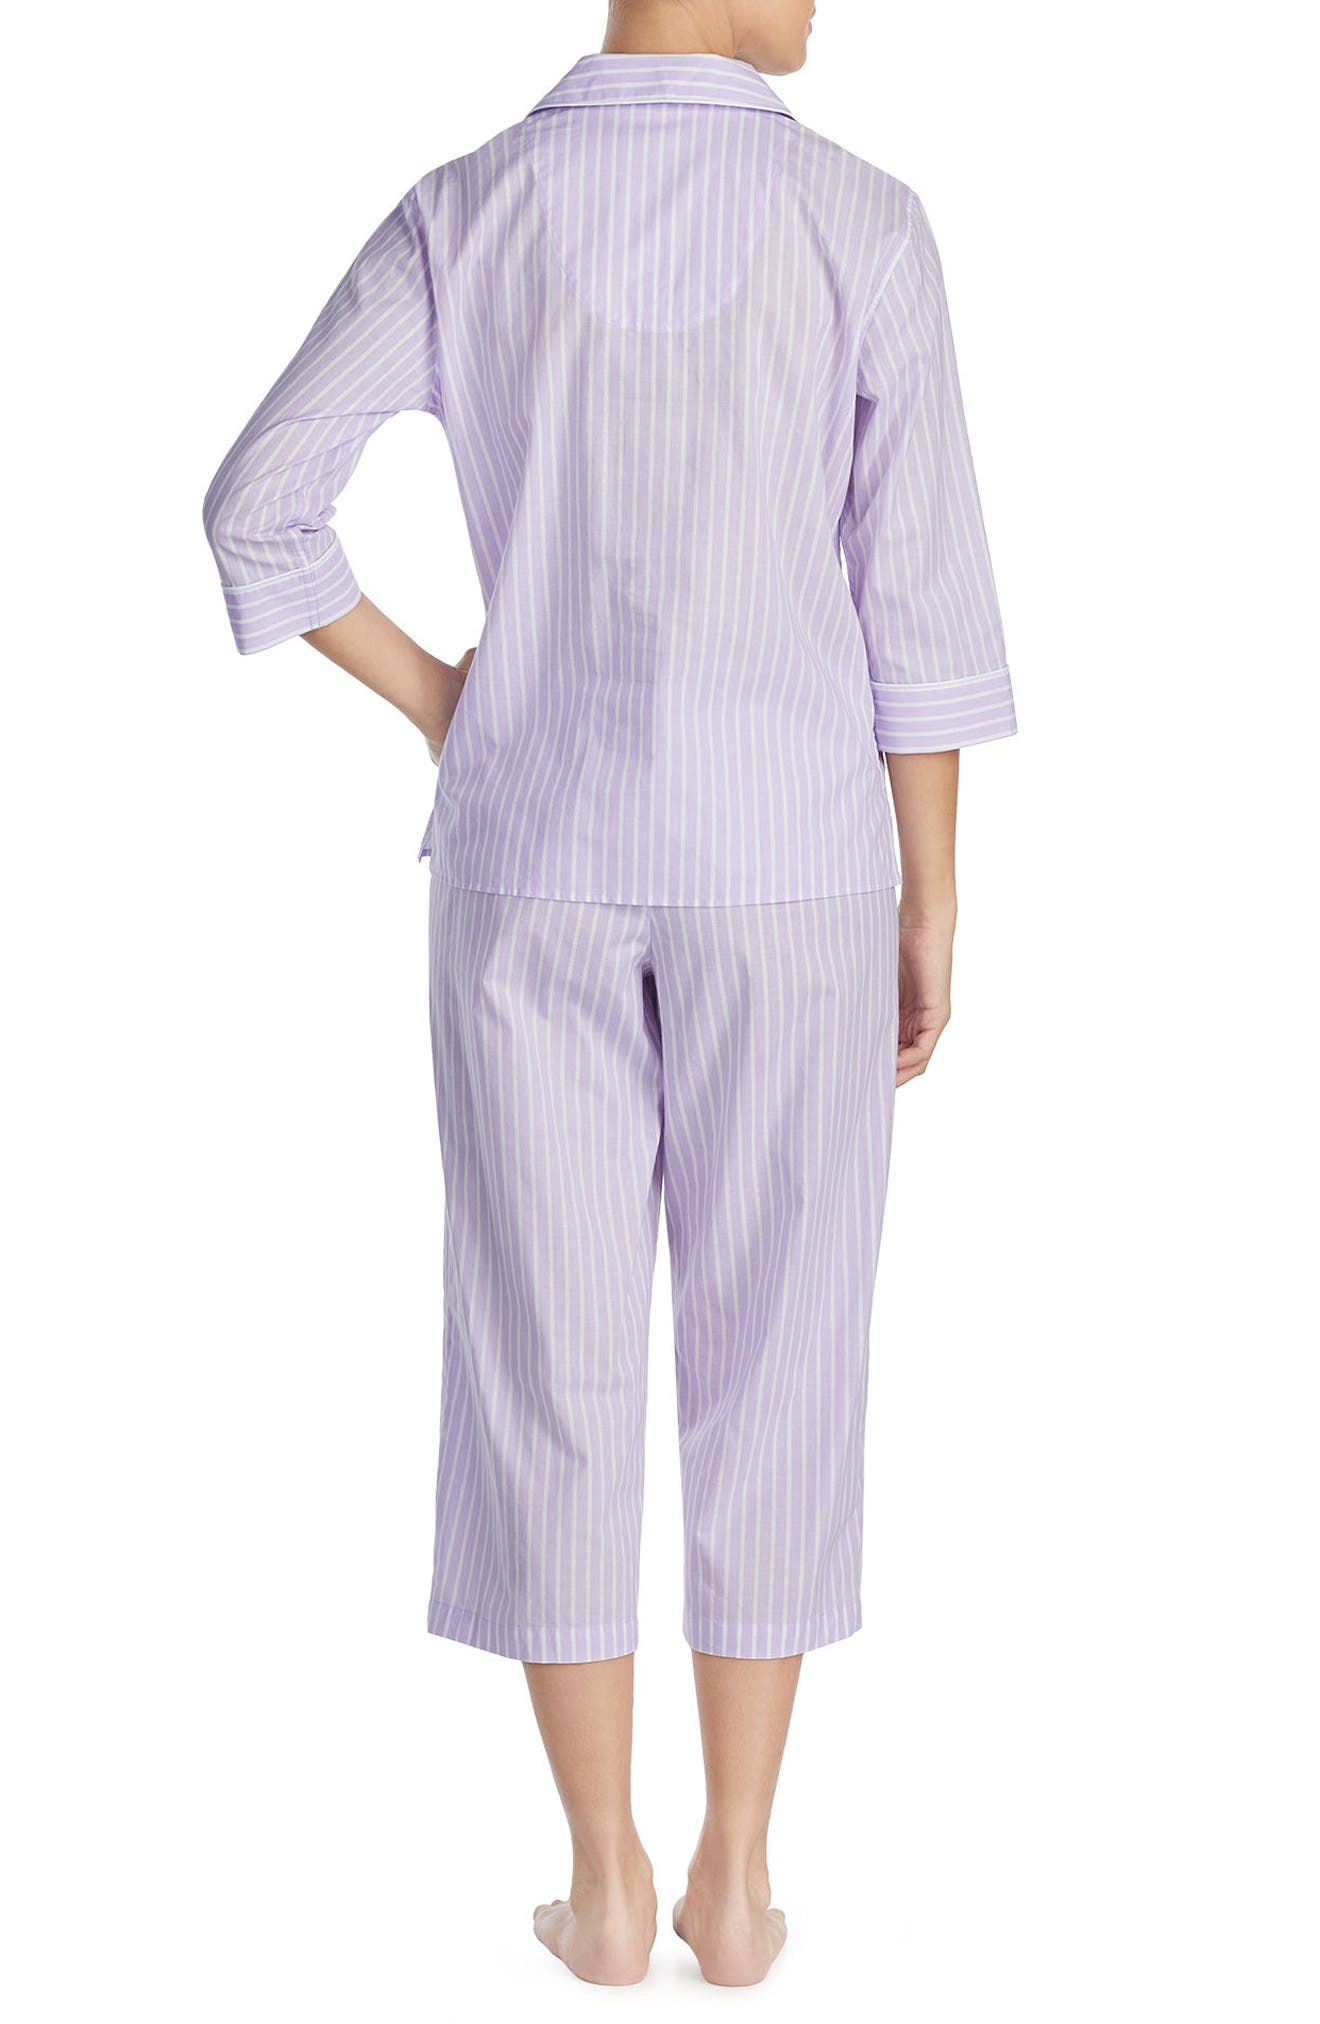 Capri Pajamas,                             Alternate thumbnail 2, color,                             Lilac Stripe